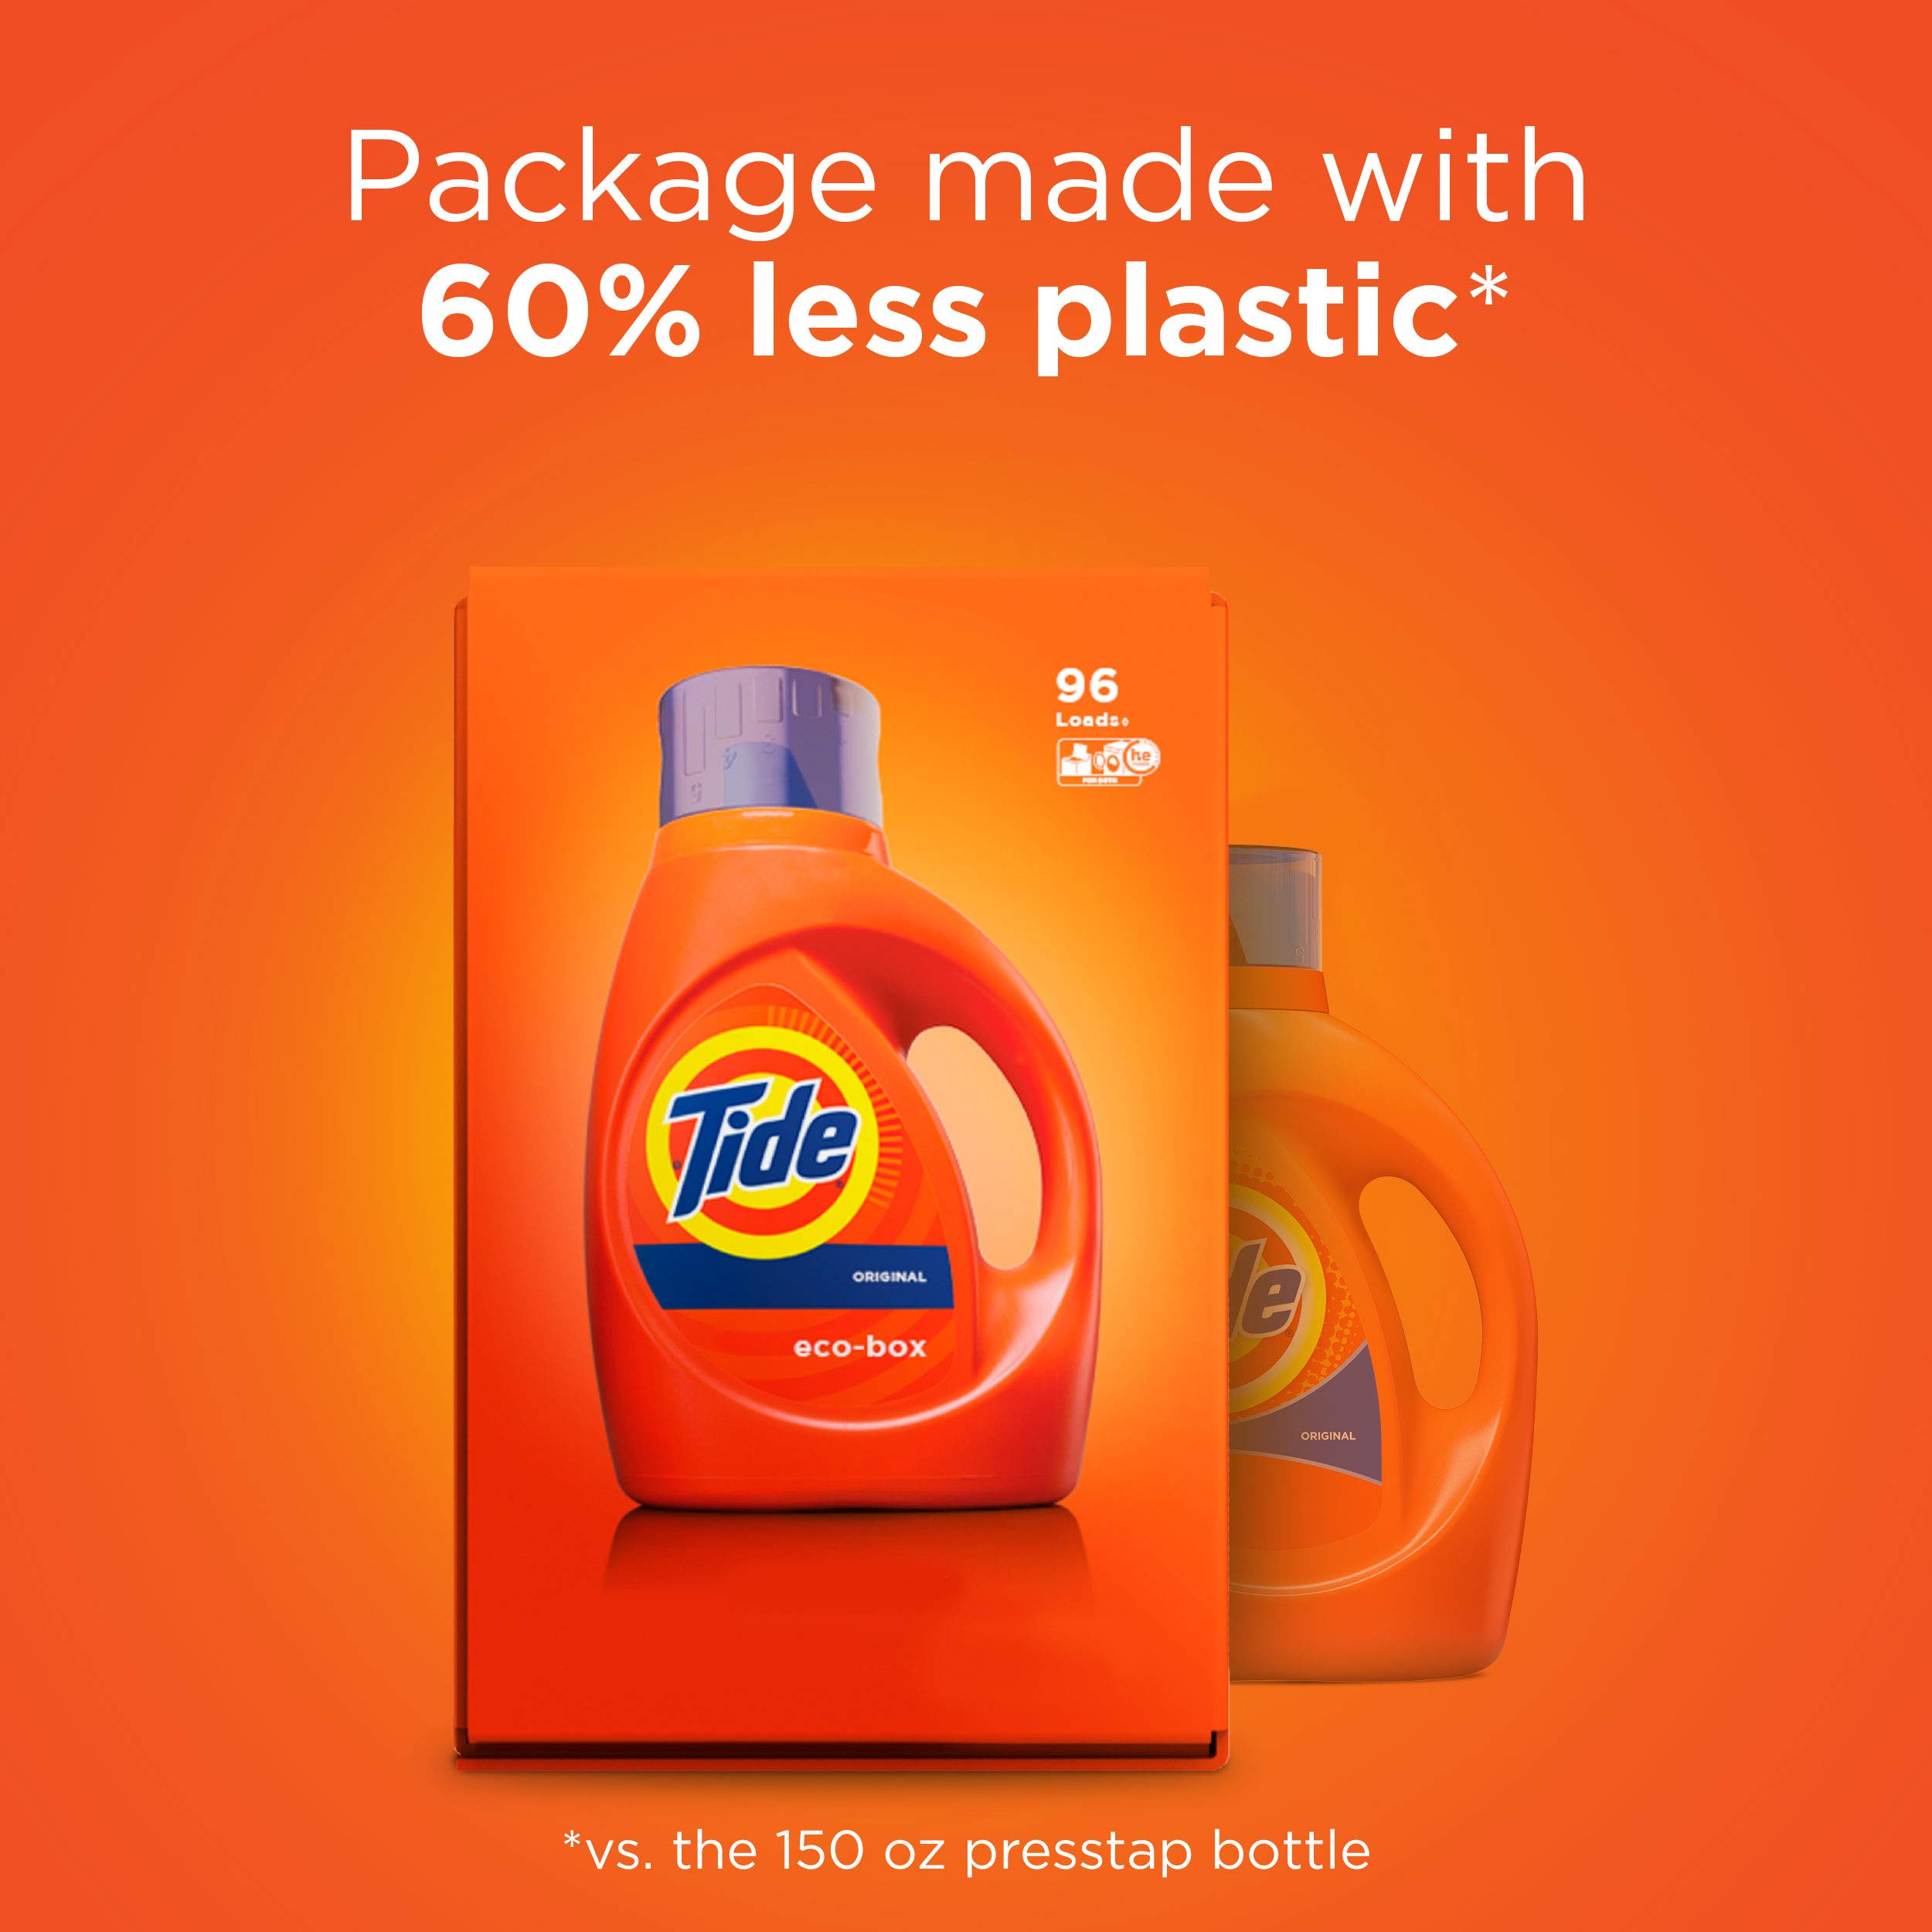 Tide Laundry Detergent Liquid Eco-Box, Concentrated, Original Scent, 105 oz, HE Compatible, 96 Loads by Tide (Image #9)